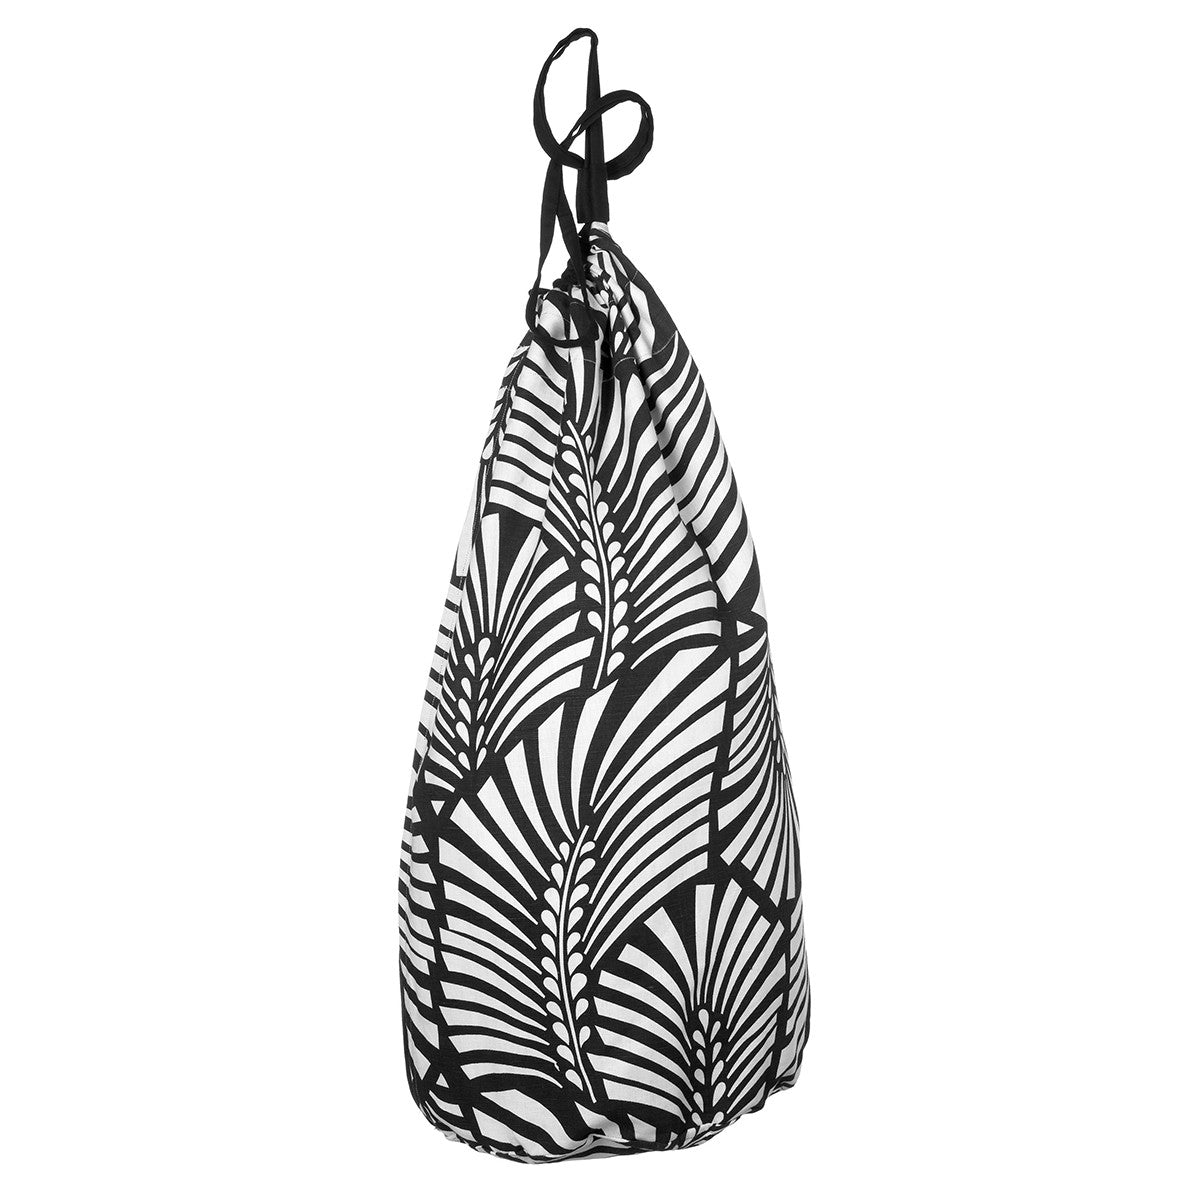 Oscar Graphic Palm Leaf Pattern Printed Cotton Linen Laundry & Storage Bags Black - Ships from Canada (USA)